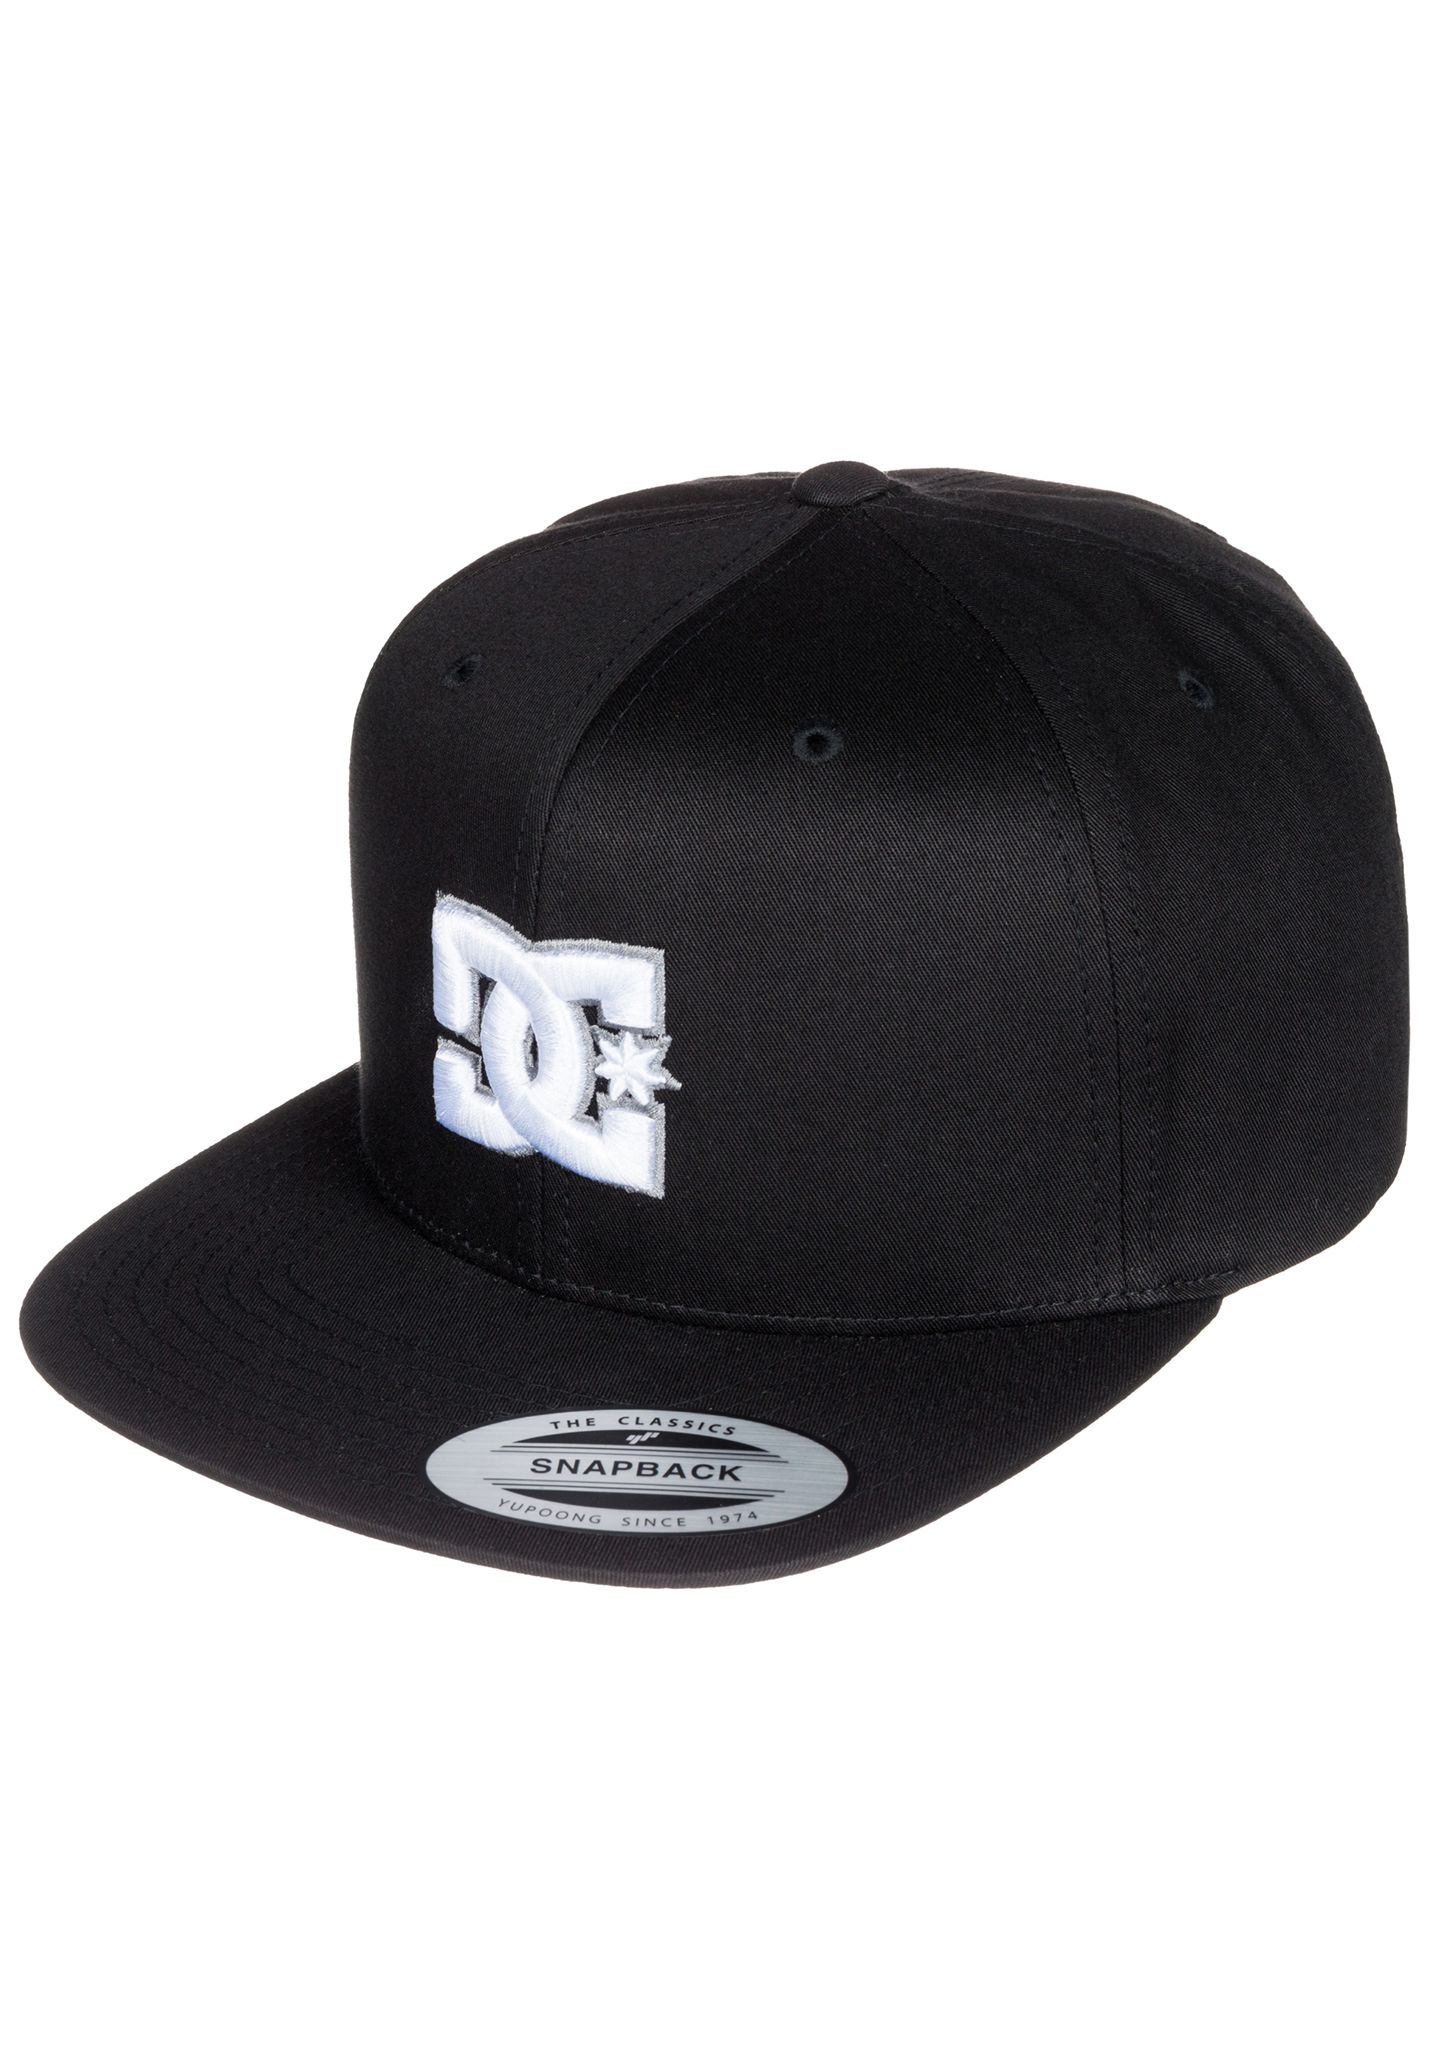 DC Snappy - Snapback Cap for Men - Black - Planet Sports 1e76fb9ae16